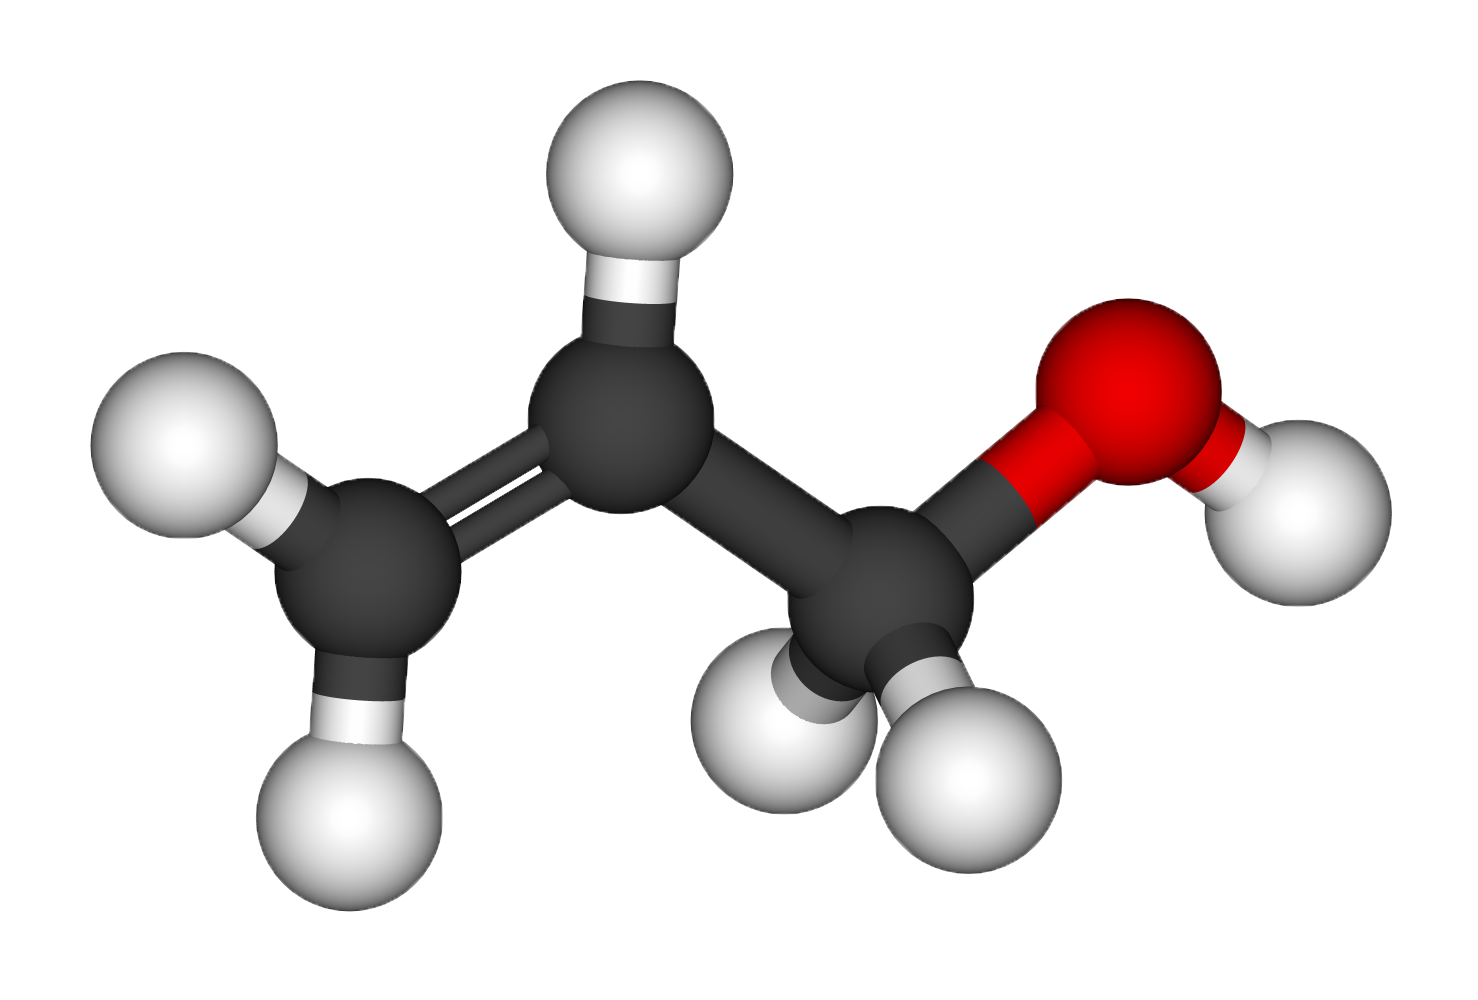 isopropyl structure